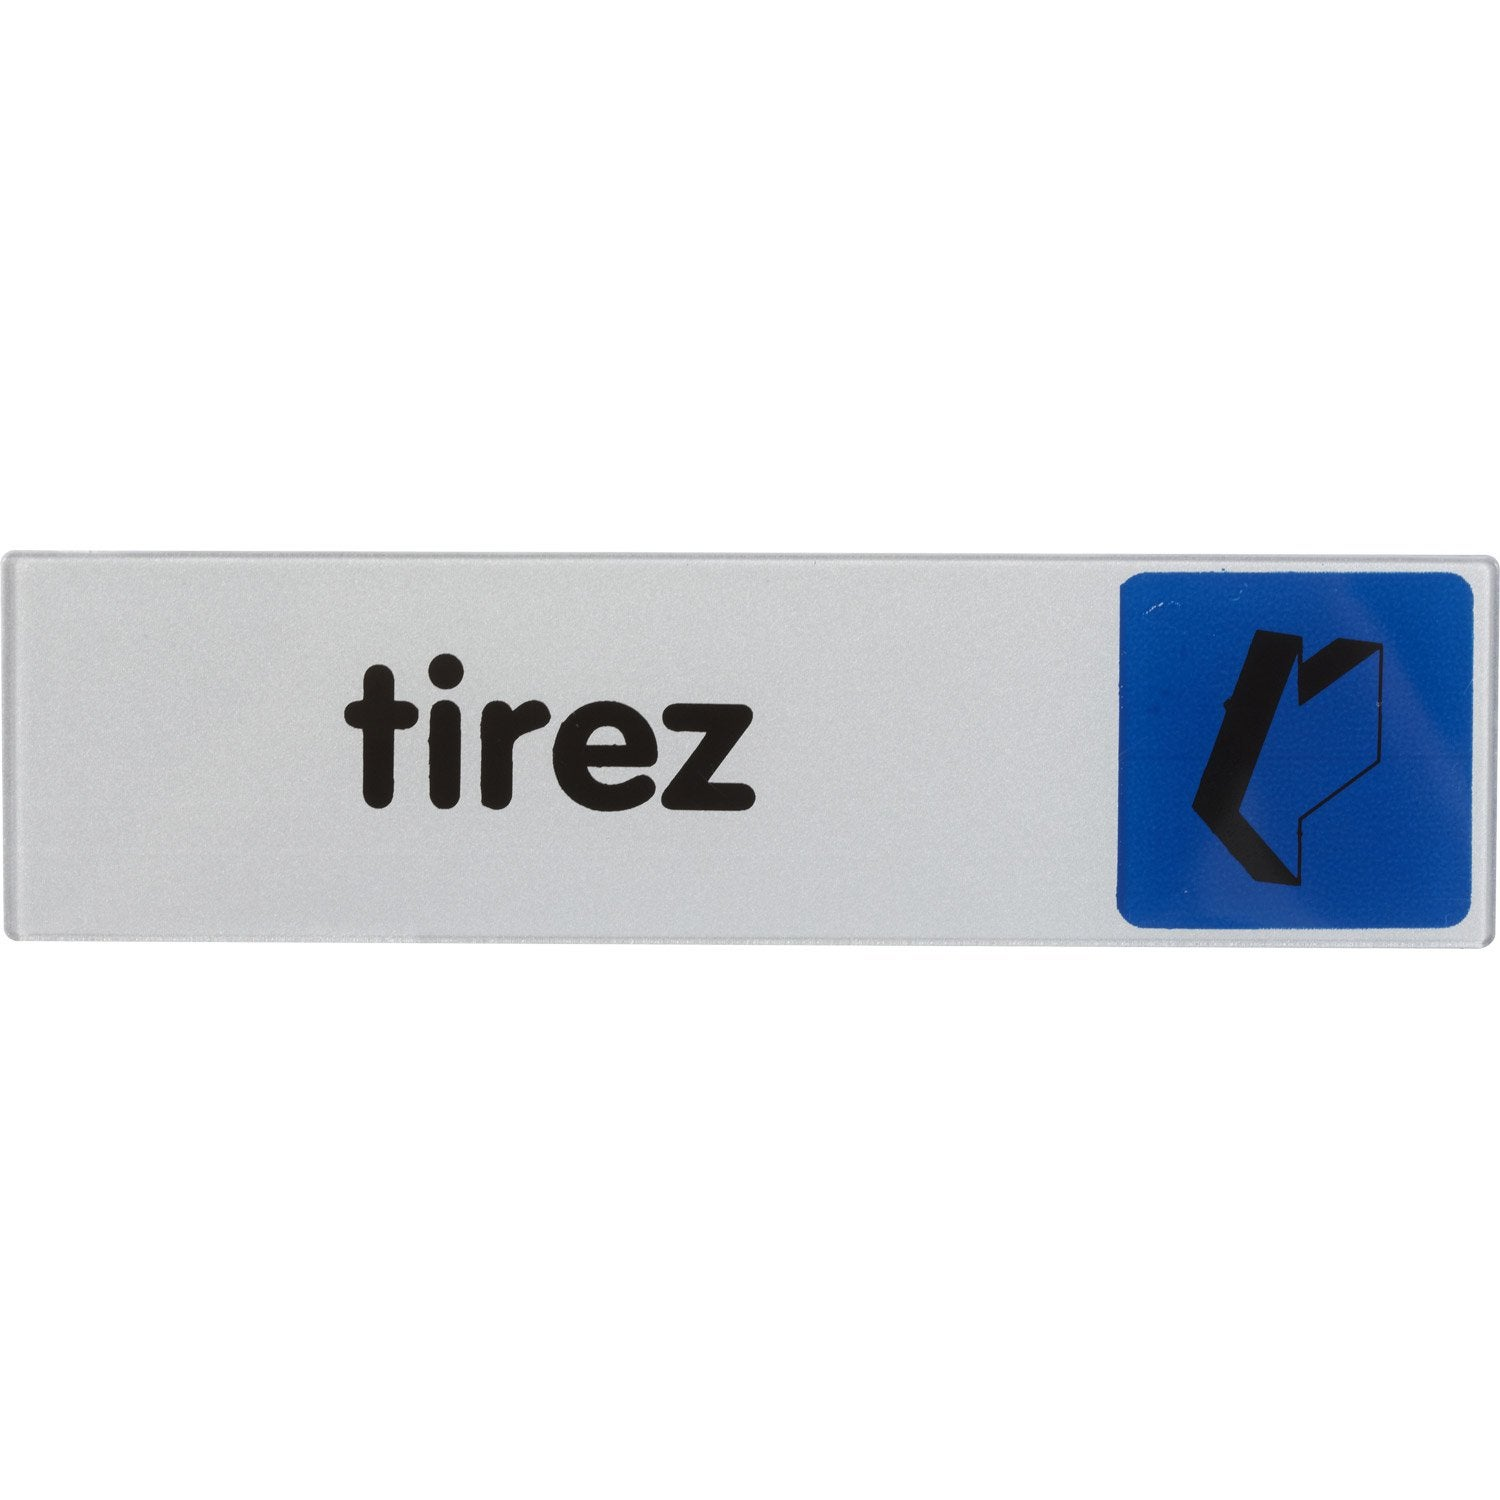 Plaque plexiglass tirez en plastique leroy merlin for Plaque de plexiglass castorama